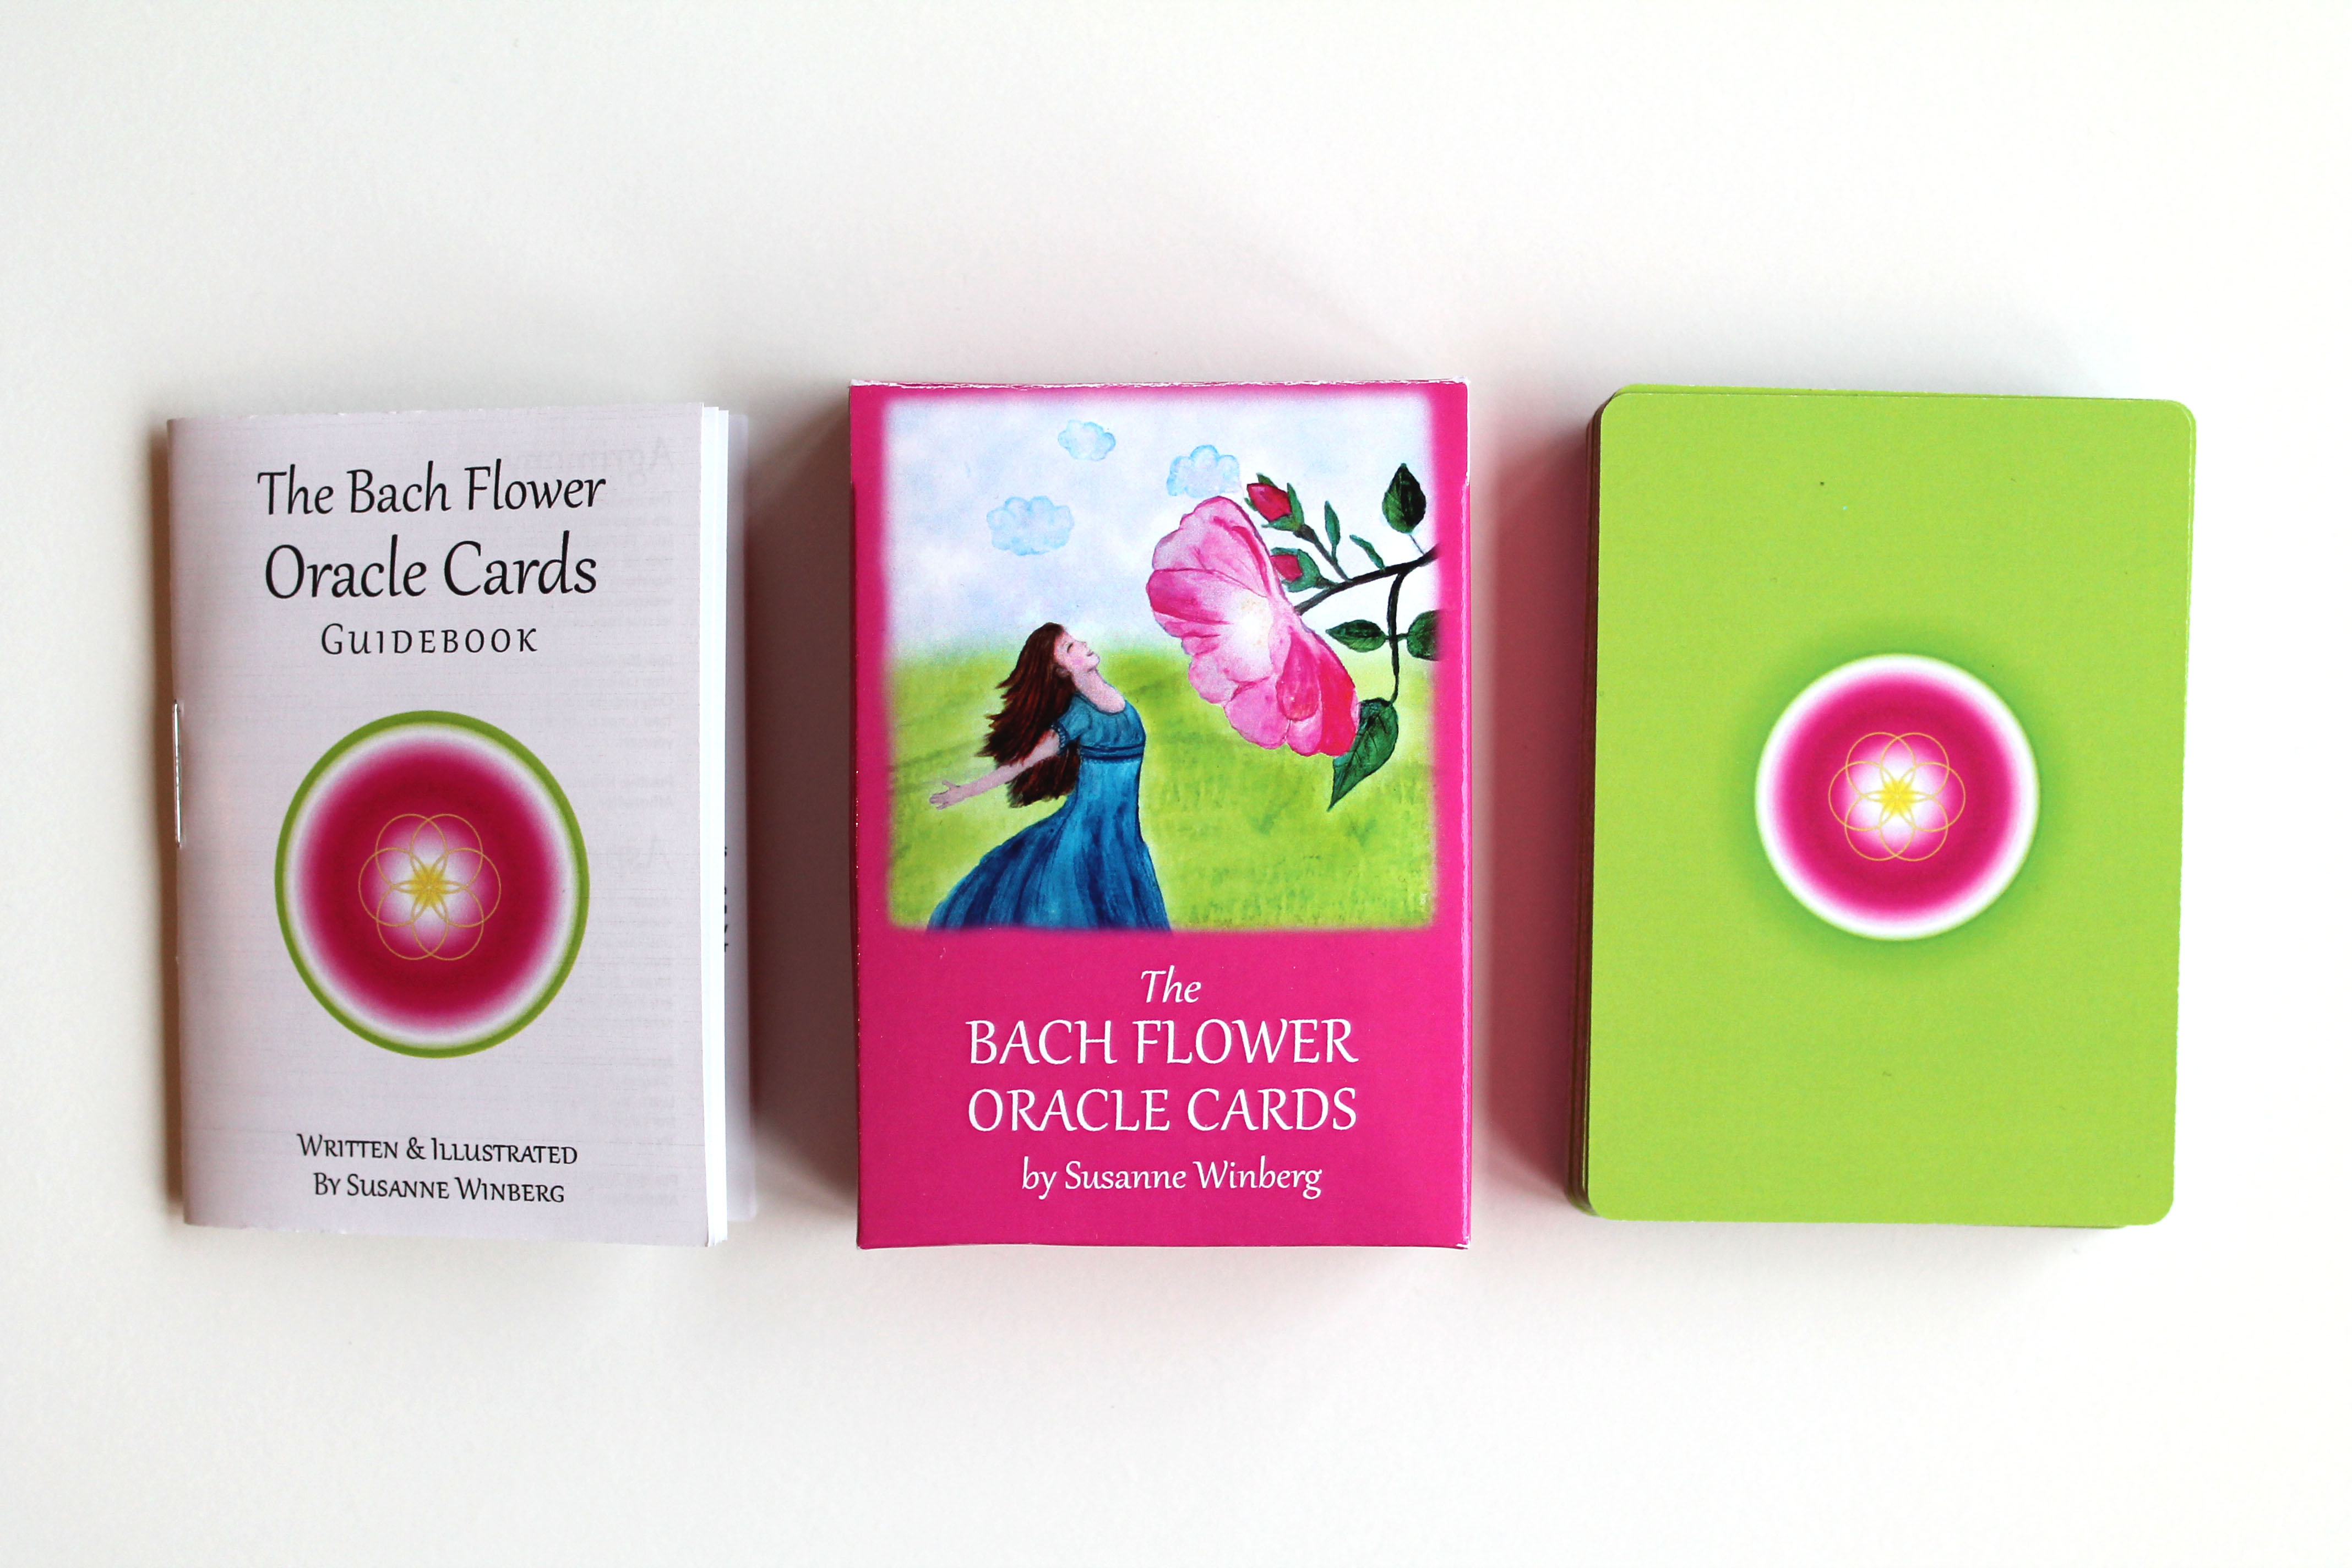 Bach Flower Oracle Cards by Susanne Winberg